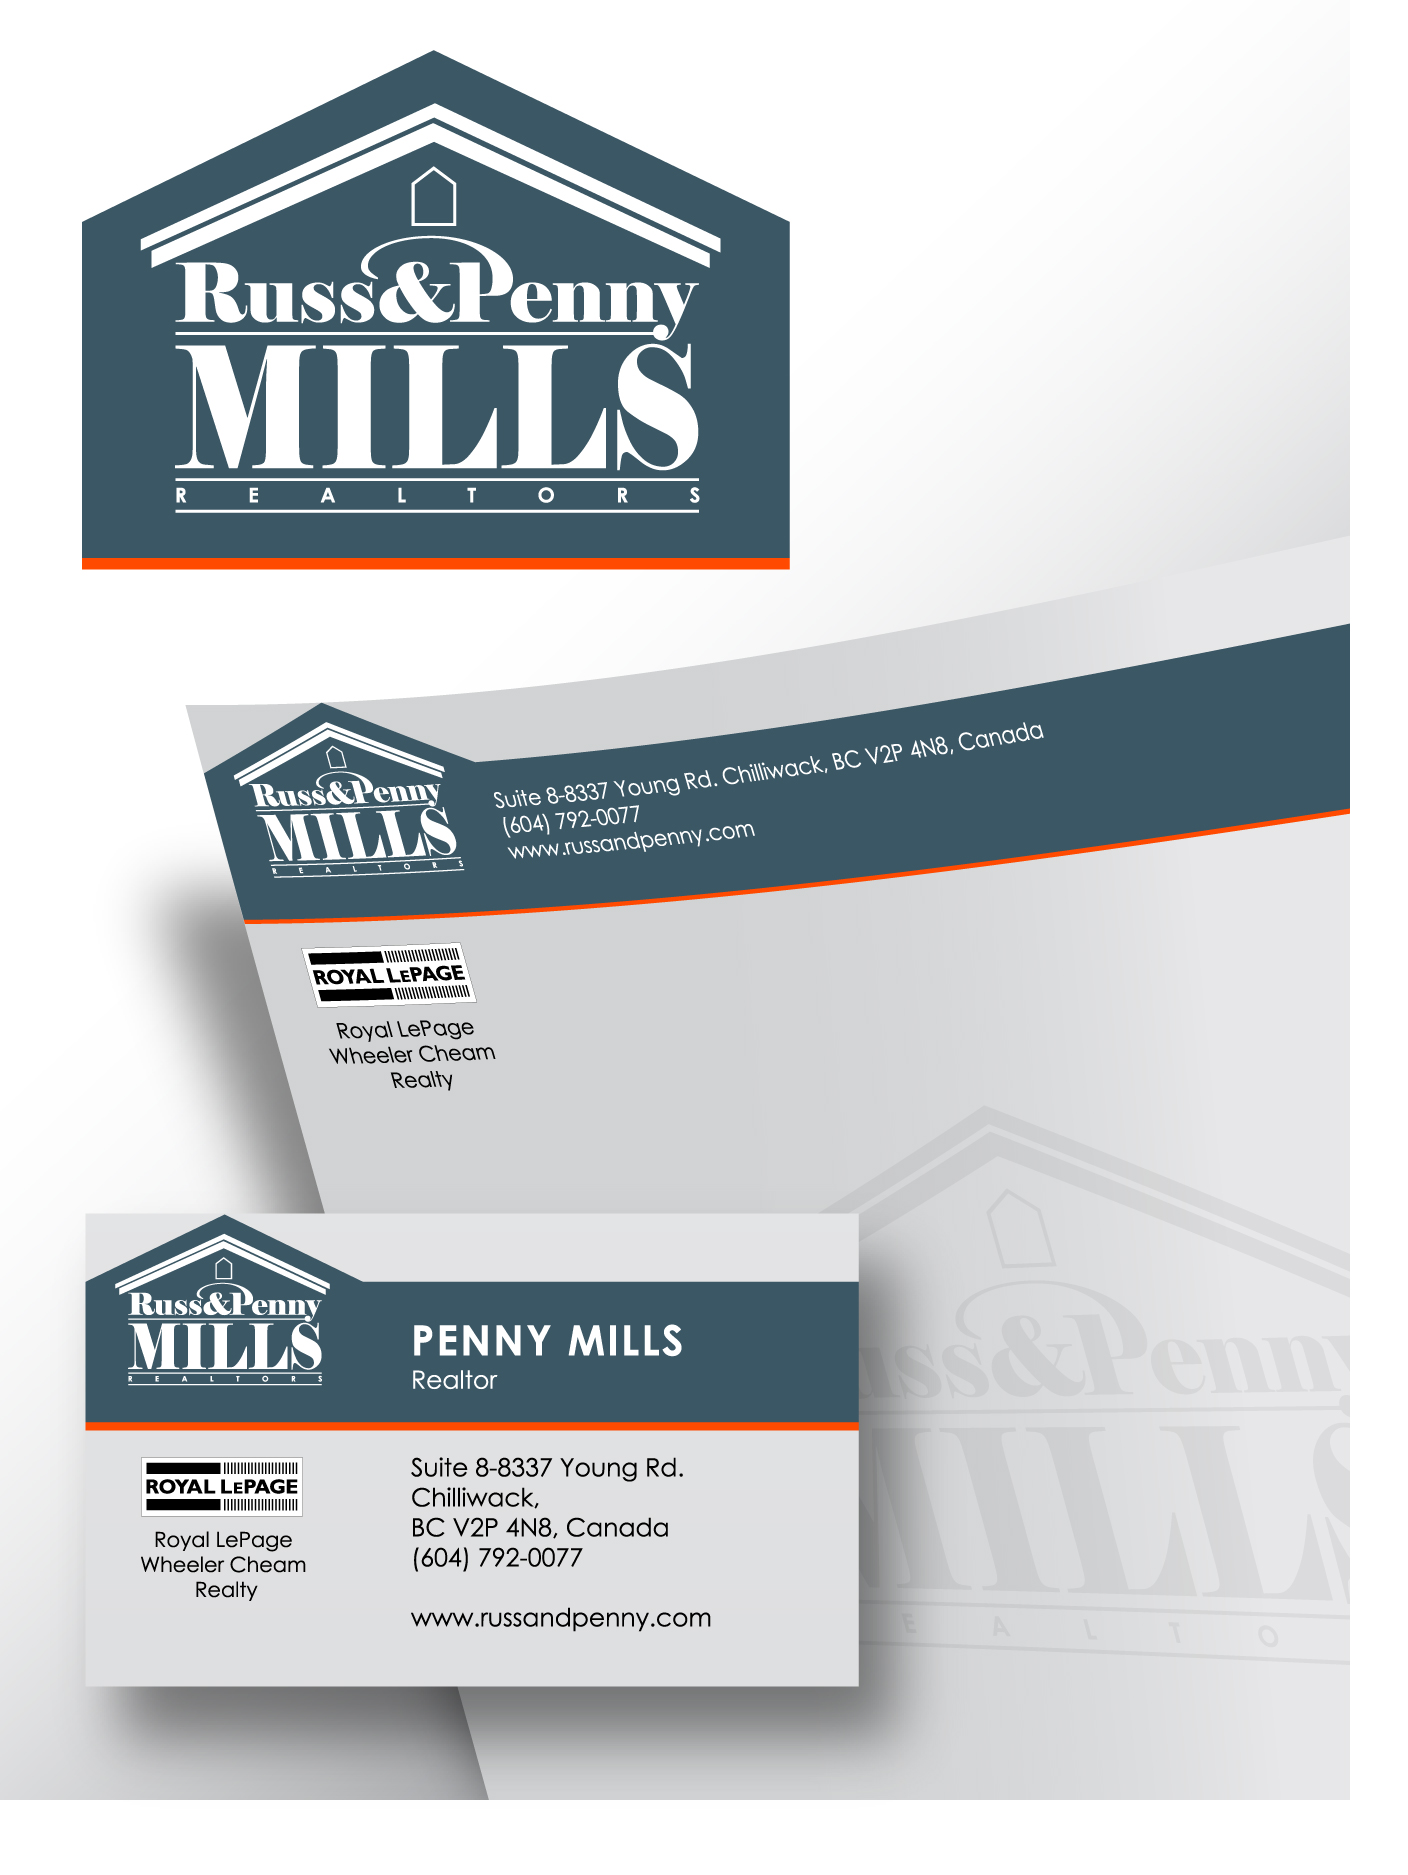 Custom Design by Wilfredo Mendoza - Entry No. 61 in the Custom Design Contest Fun Custom Design for Russ and Penny Mills (realtors).